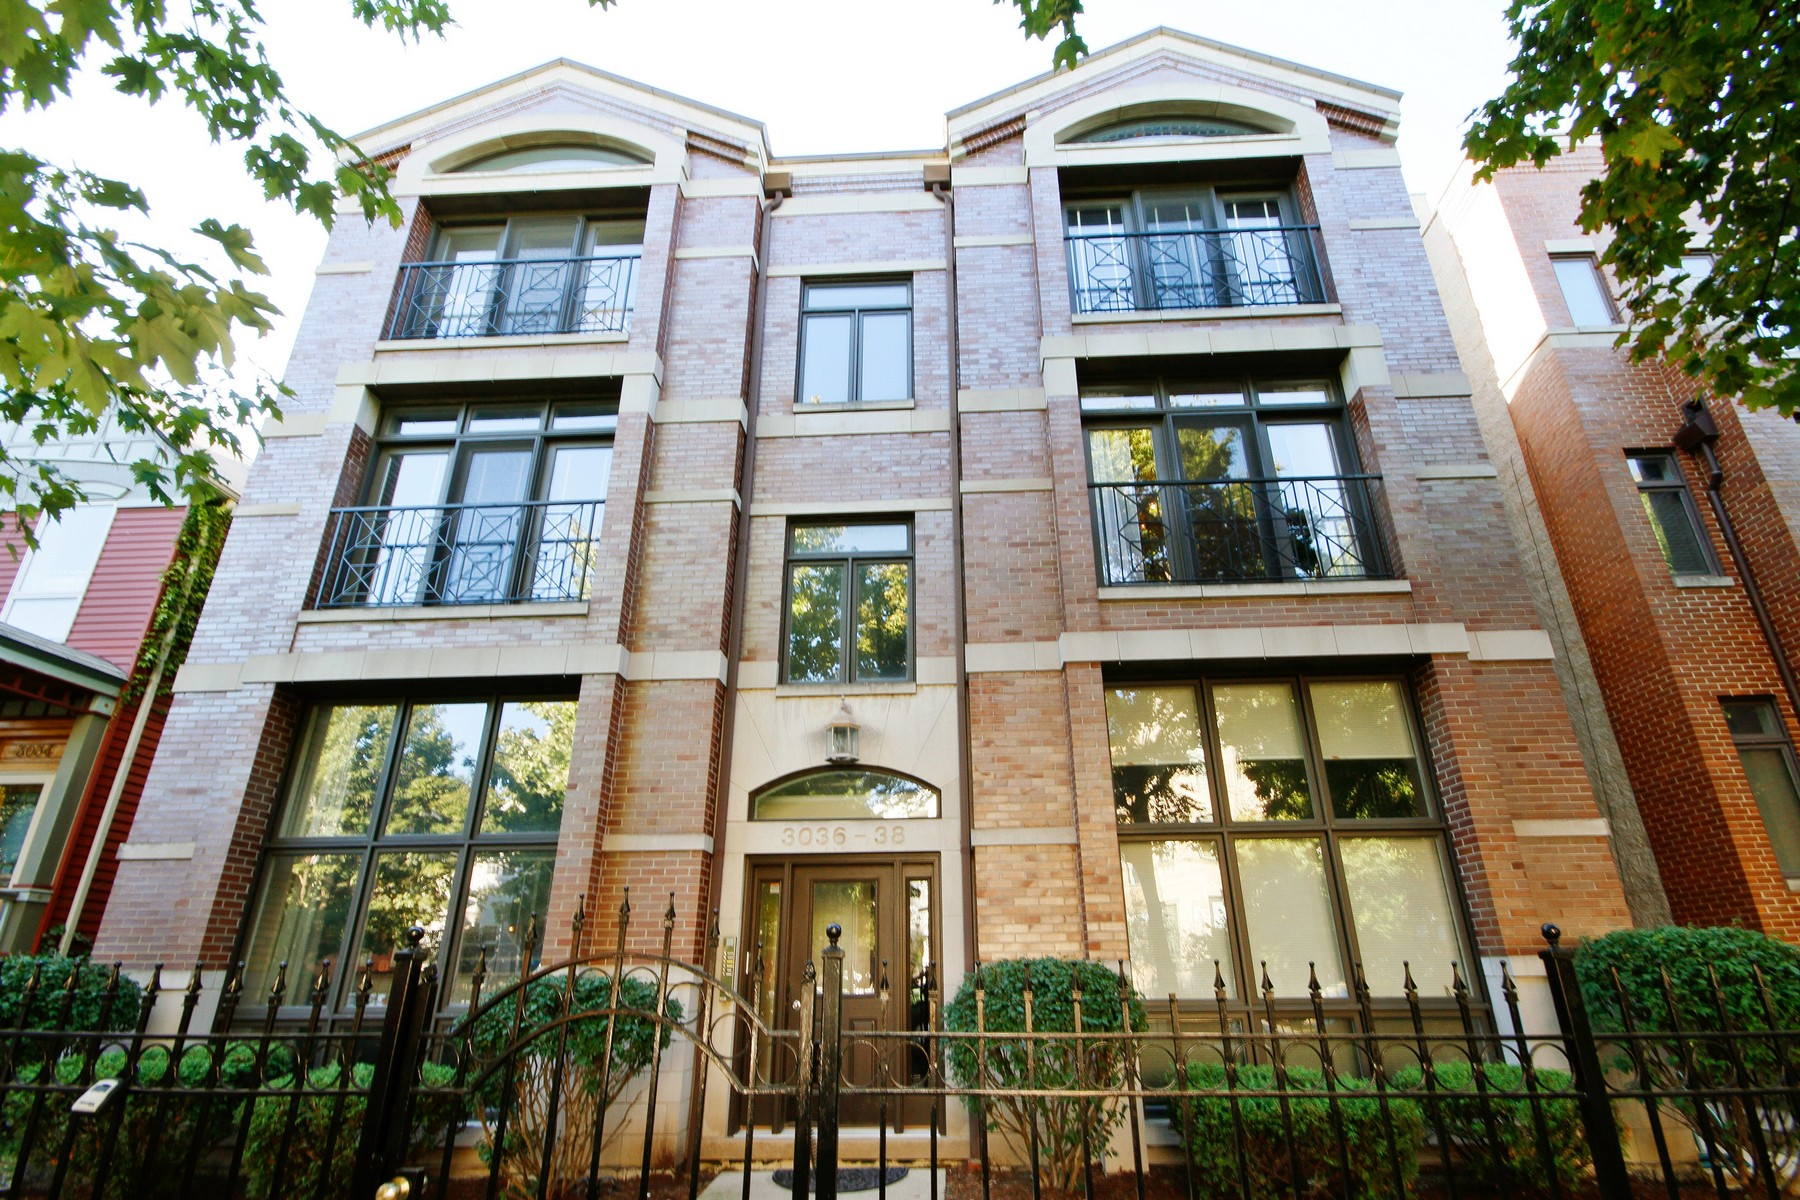 Maison unifamiliale pour l Vente à Extra Wide Condo in Lakeview 3038 N Kenmore Avenue Unit 2N Lakeview, Chicago, Illinois, 60657 États-Unis